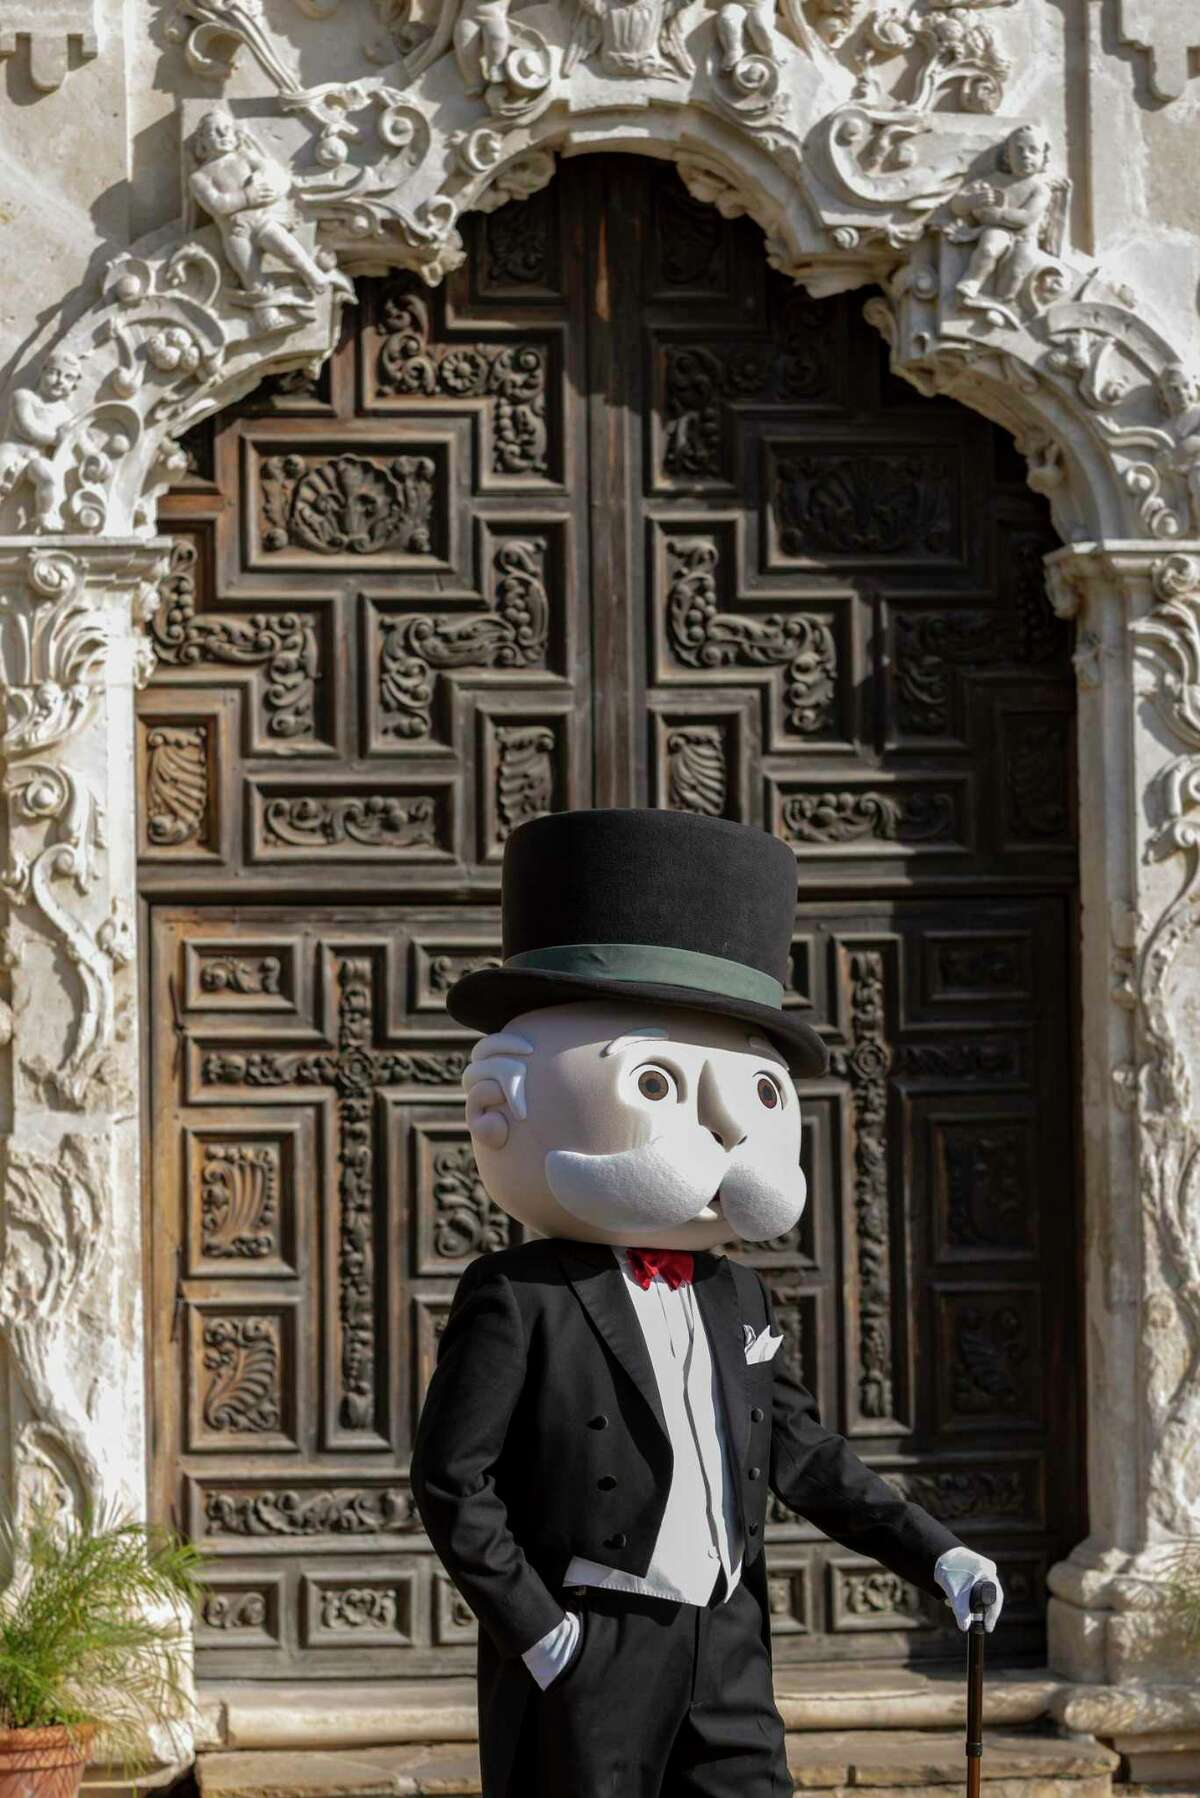 Uncle Pennybags, aka the Monopoly Man, leans on his walking stick Thursday, Feb. 4, 2021, in front of Mission San José during an announcement that Hasbro is releasing a San Antonio version of the official Monopoly game. Tops Trump is producing the game for Hasbro, which is expected to be released in September.